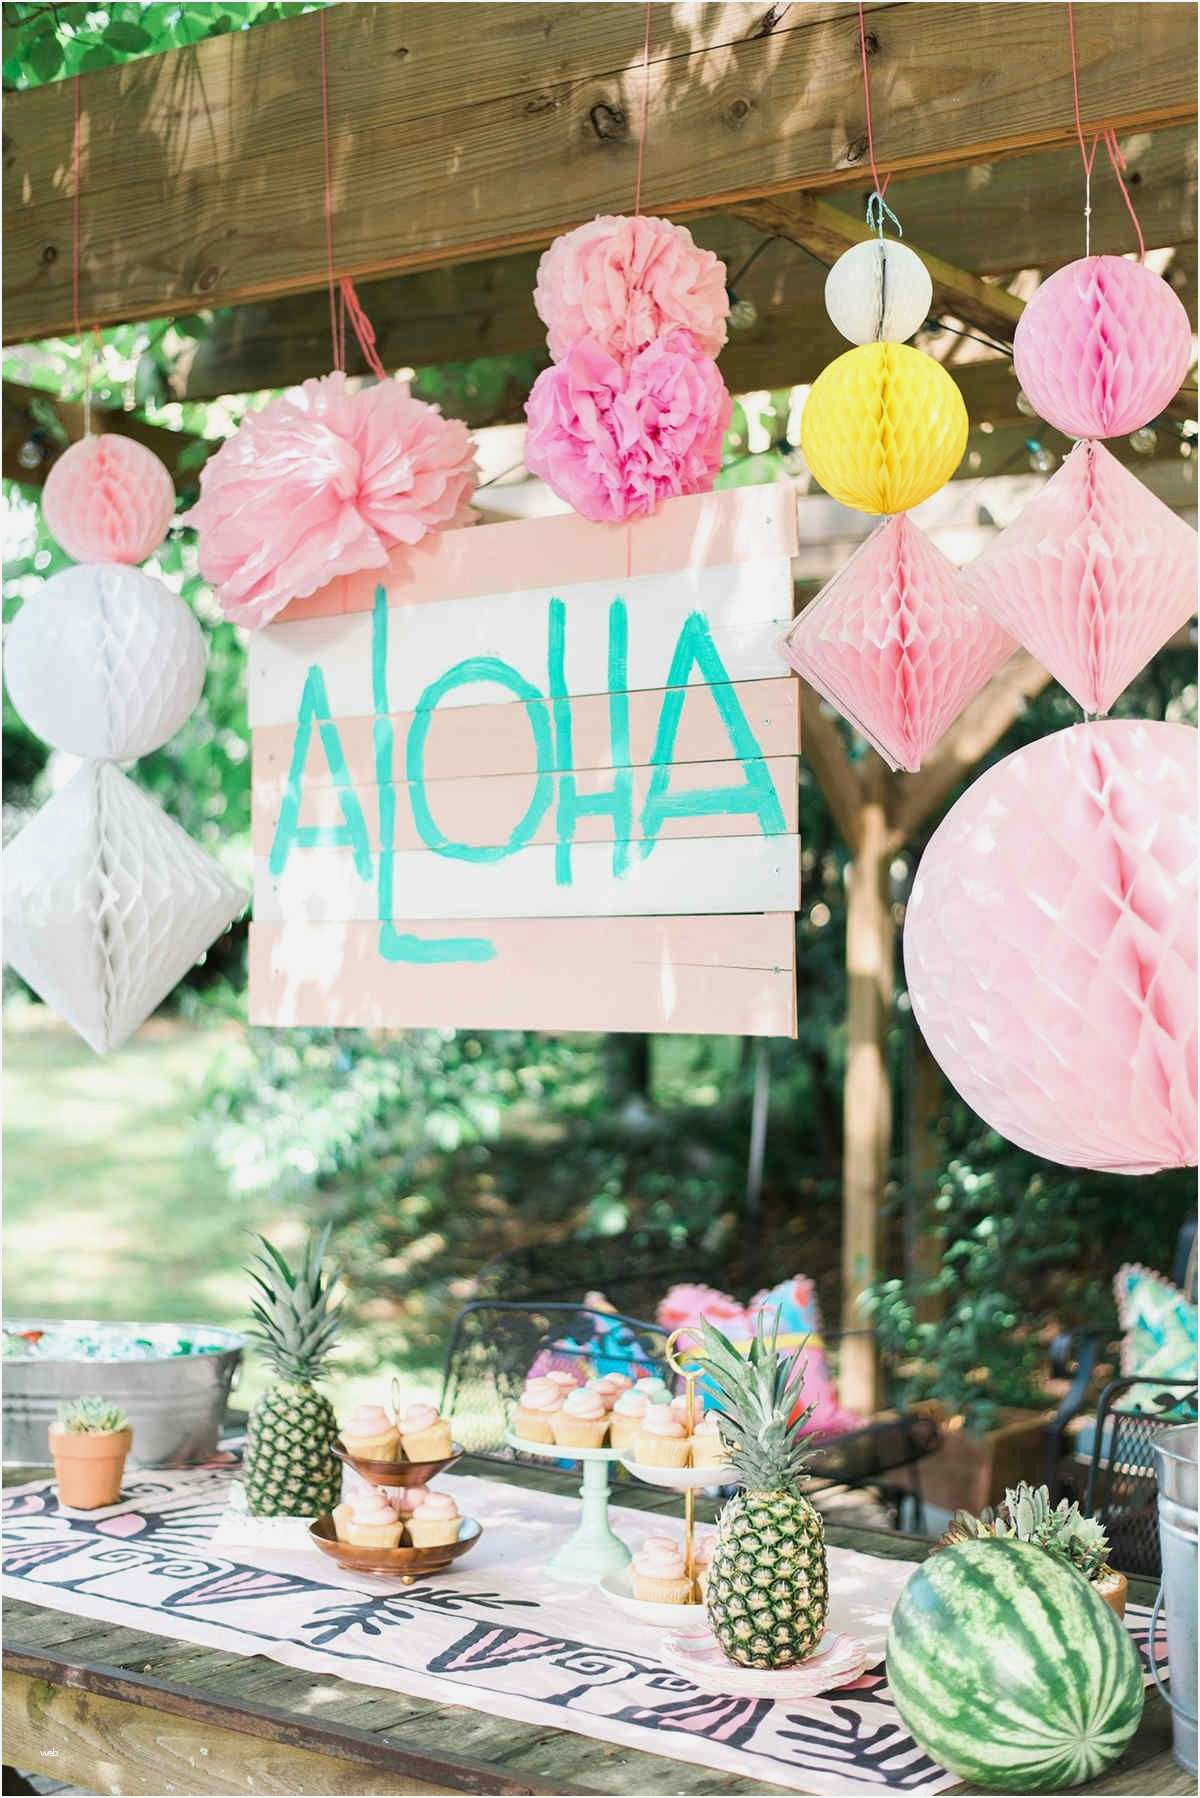 Best Luau Backyard Party Images Home Design Wonderful With Home inside 14 Some of the Coolest Tricks of How to Improve Backyard Luau Party Ideas